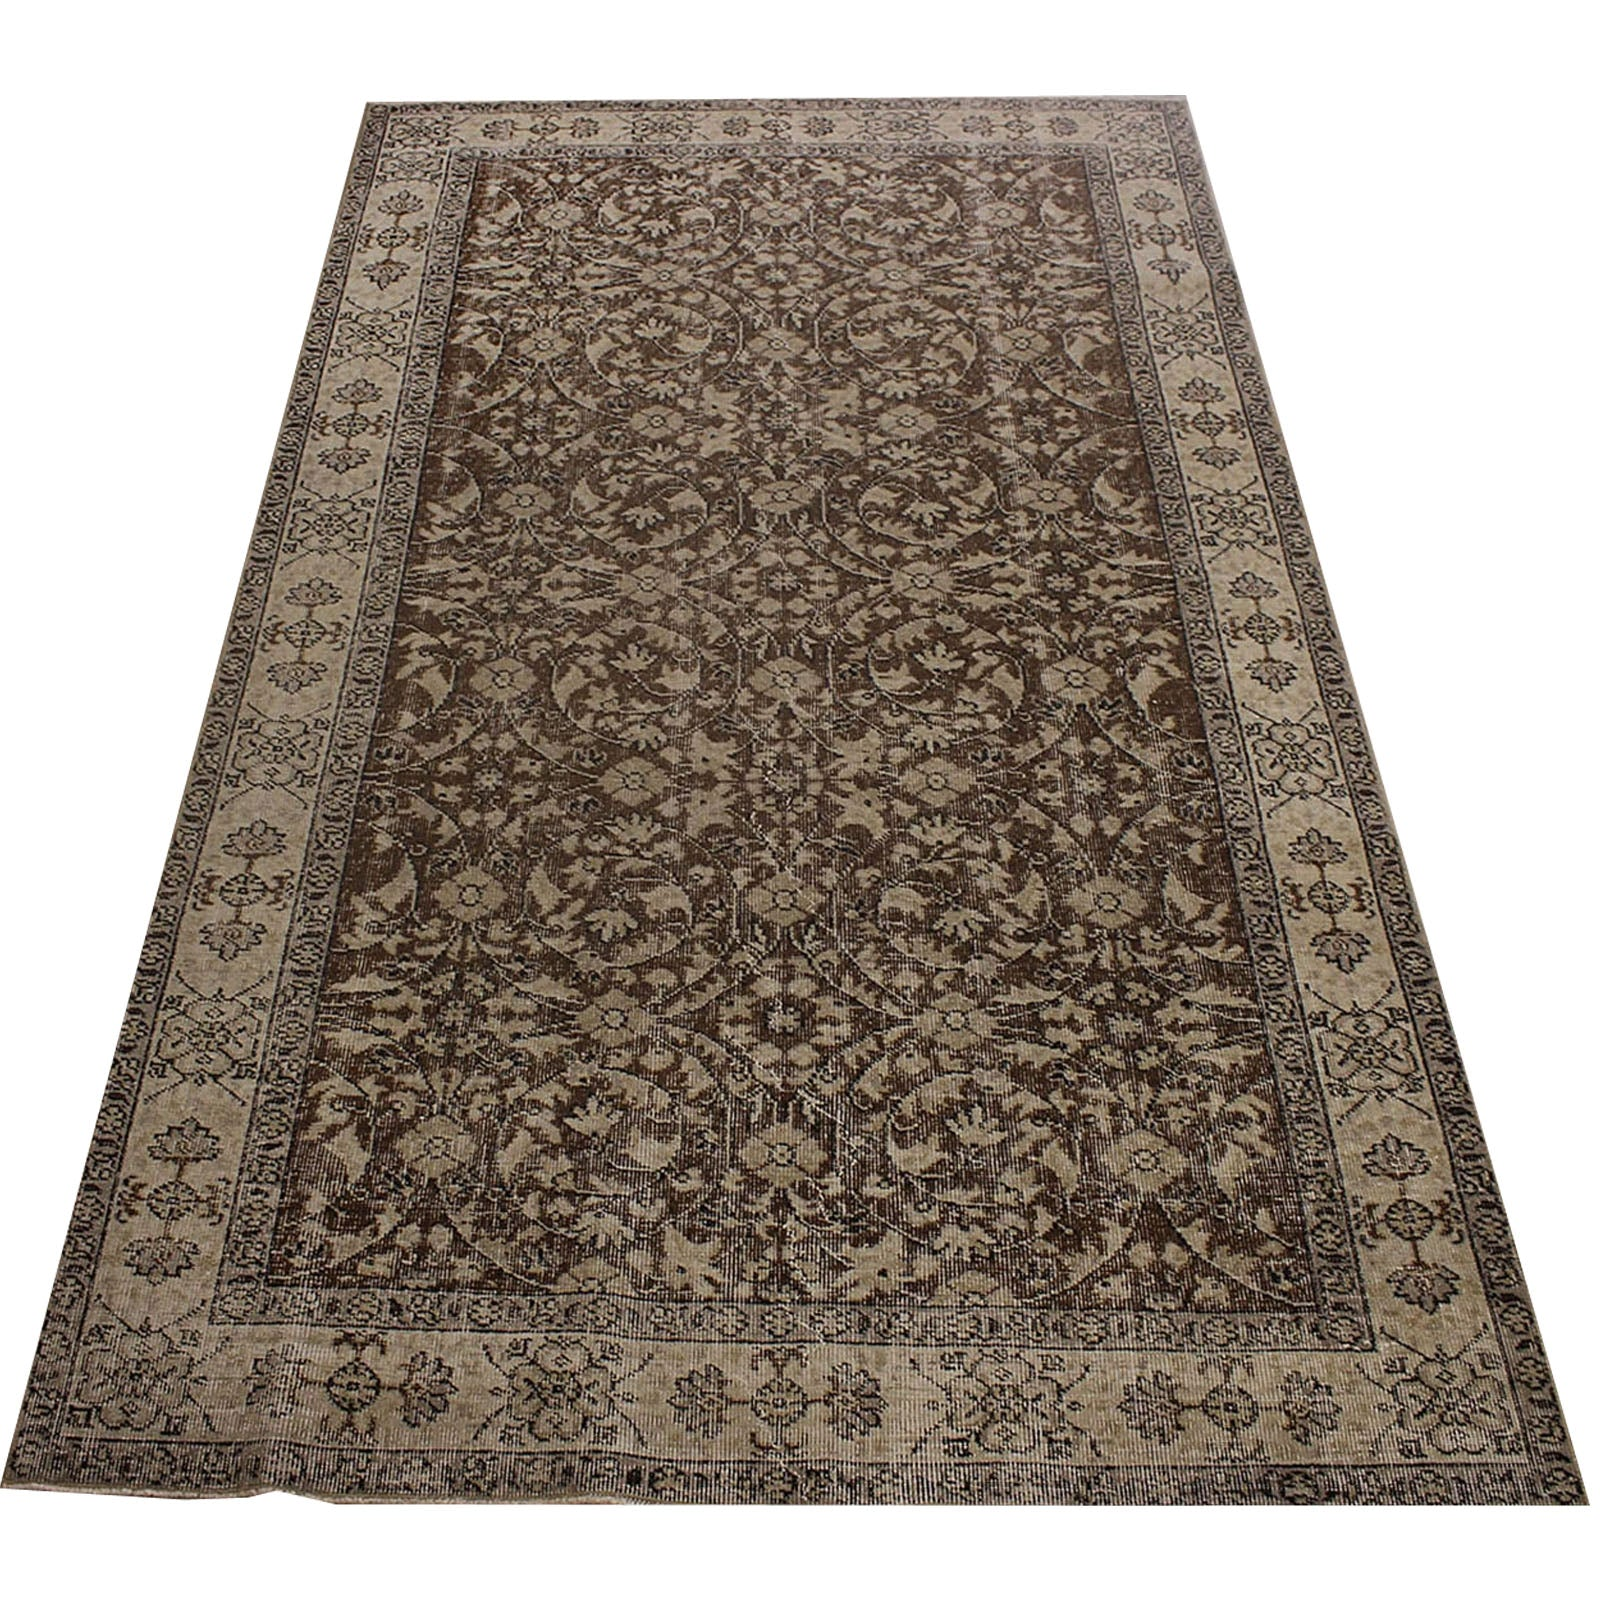 Hali 165X271 CM Bursa Handmade over dyed rug 2388